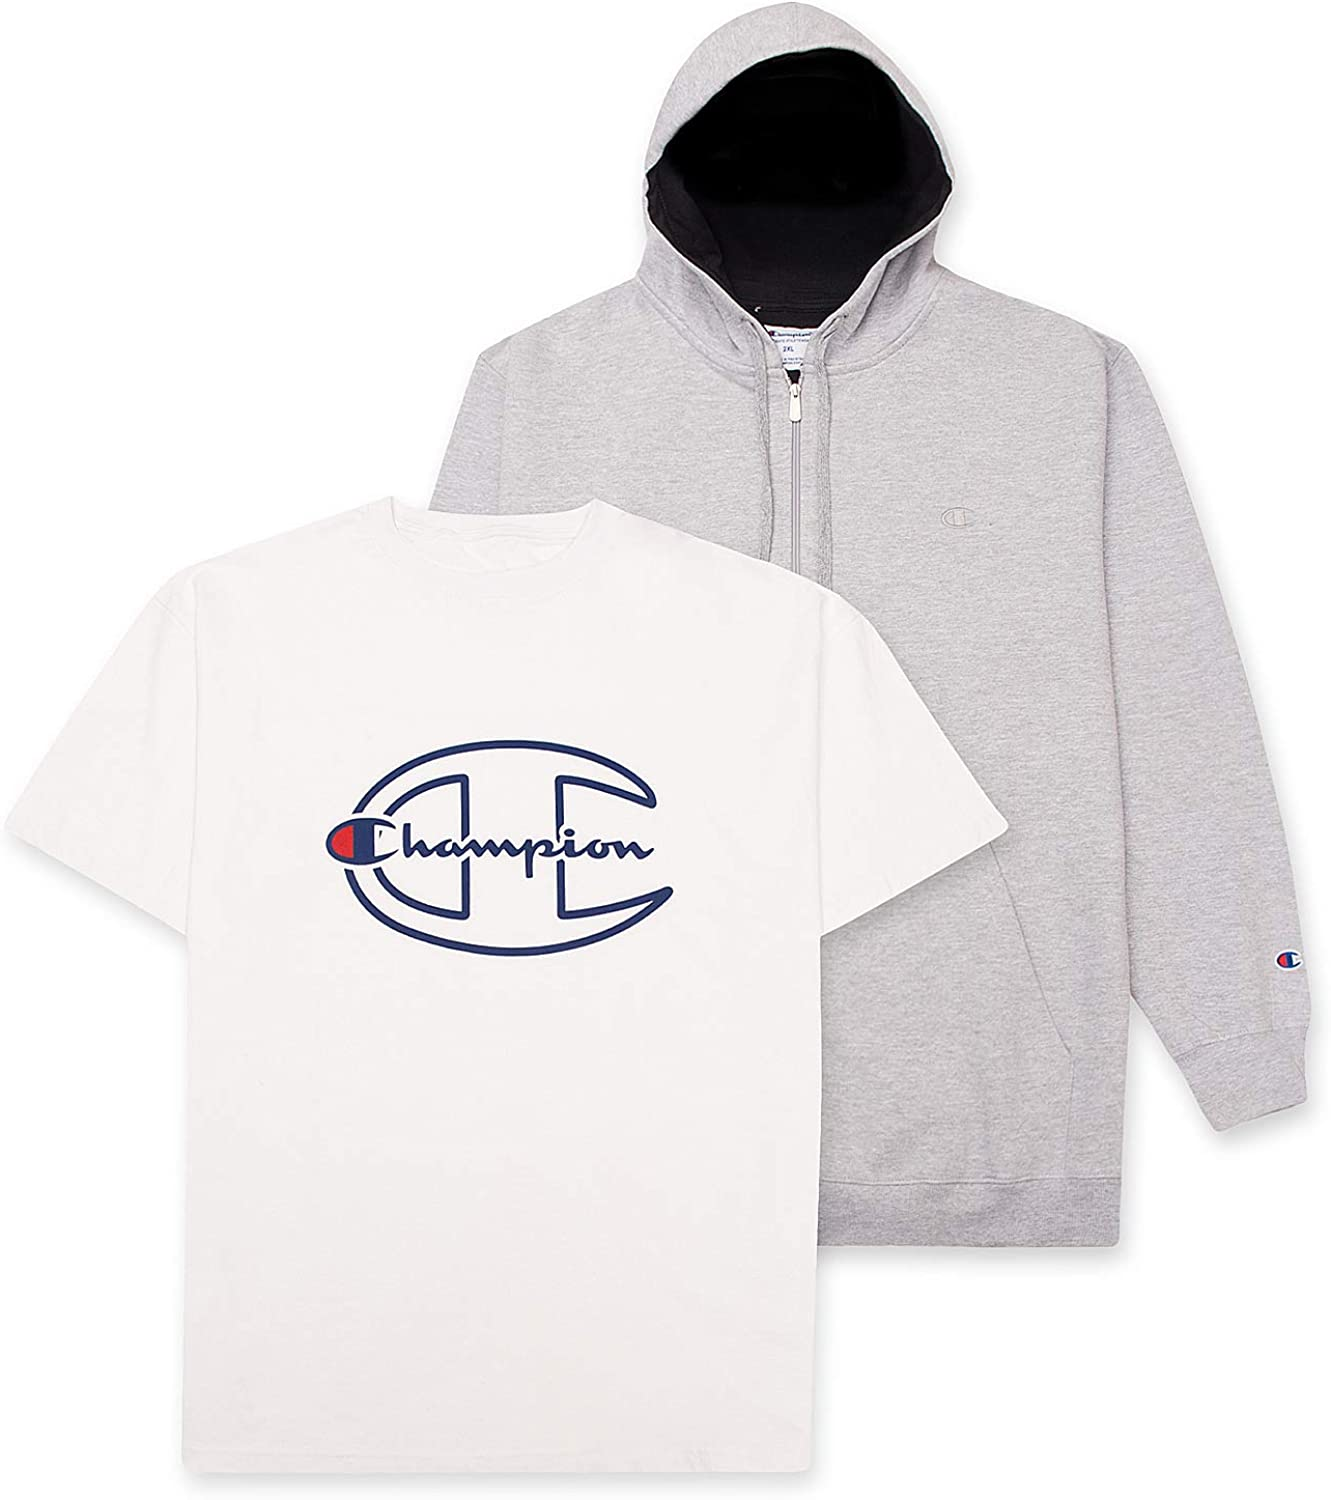 Champion Hoodies for Men - Big and Tall Shirts for Men - 2 Pack Mens T-Shirt & Champion Hoodie